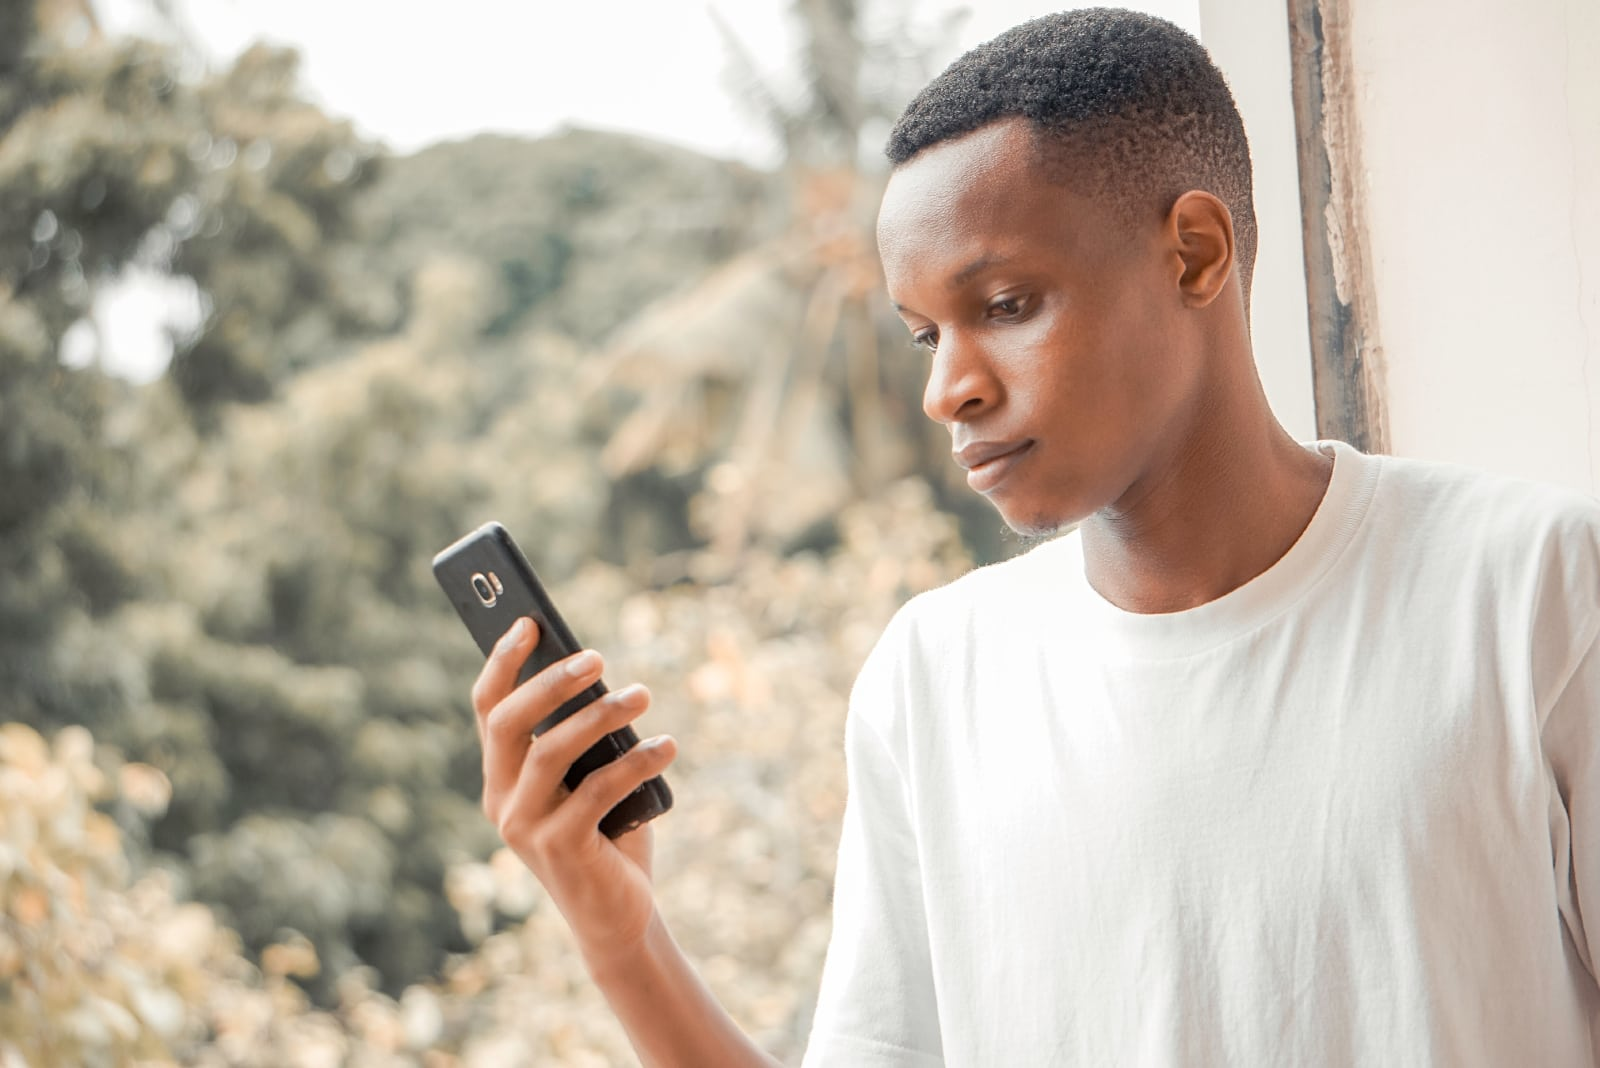 man in white shirt looking at phone outdoor